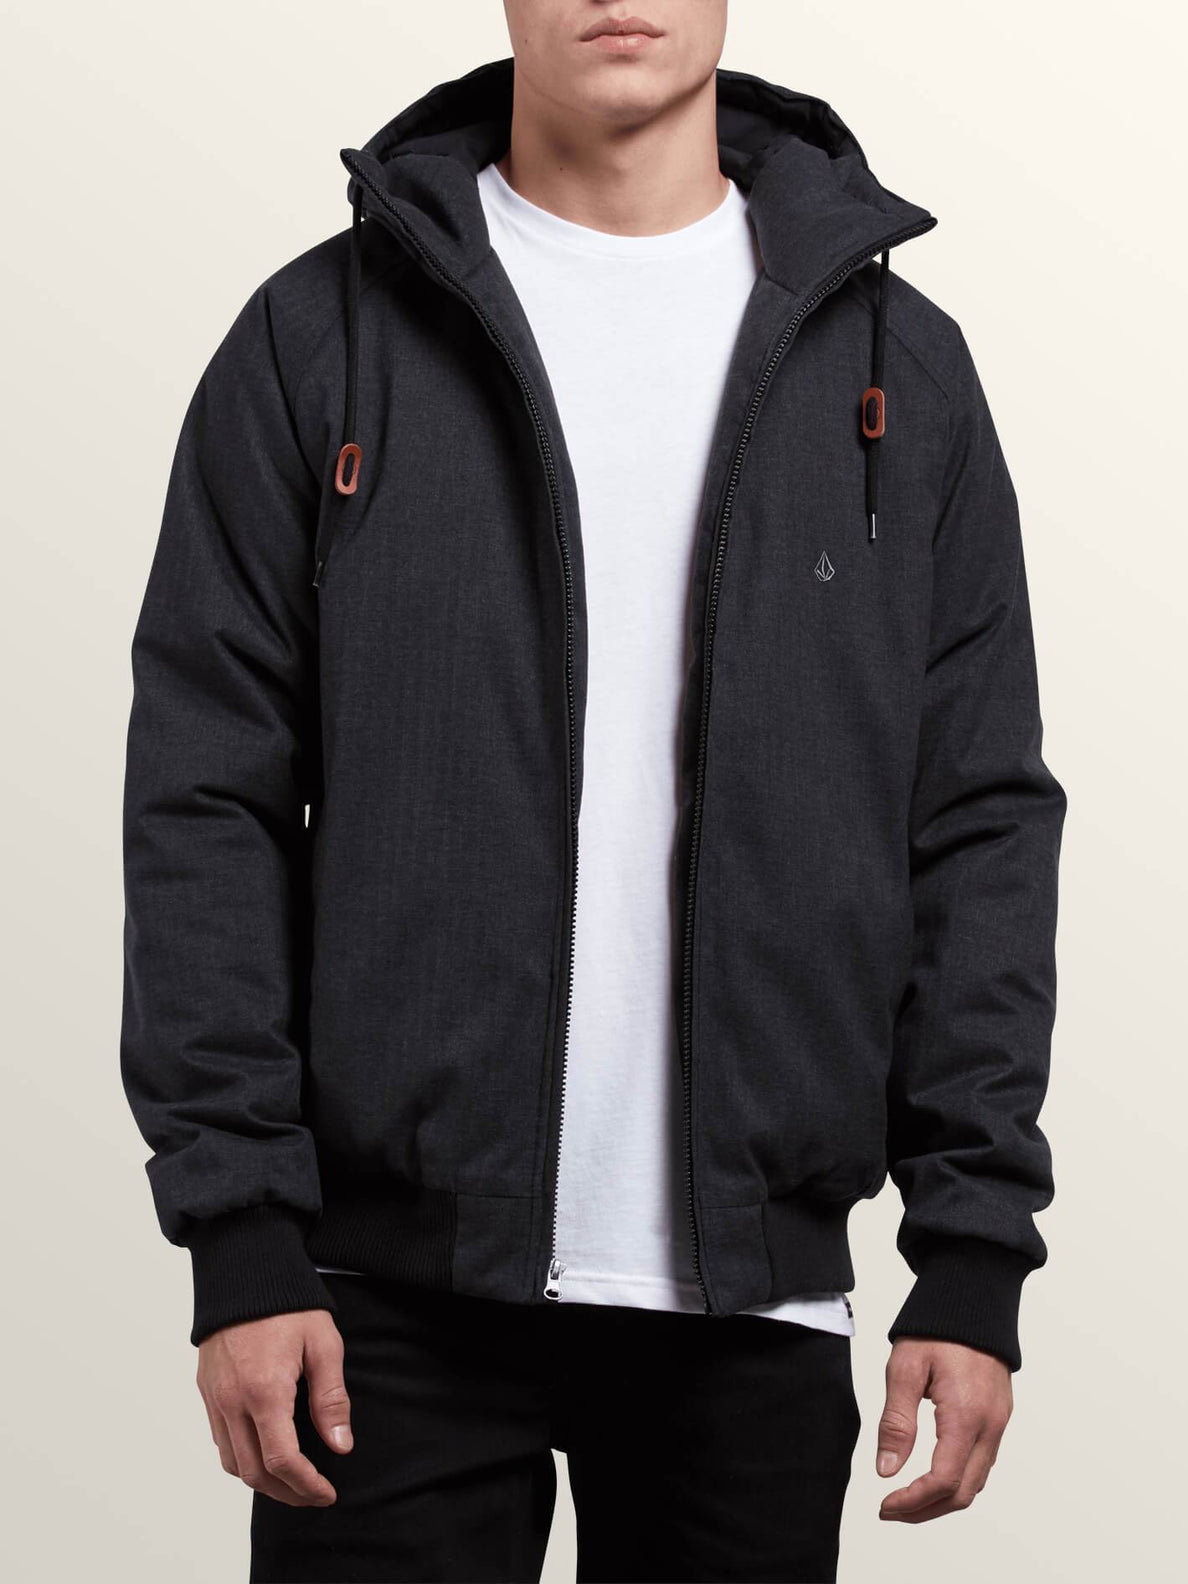 Hernan Coaster Jacket - Black